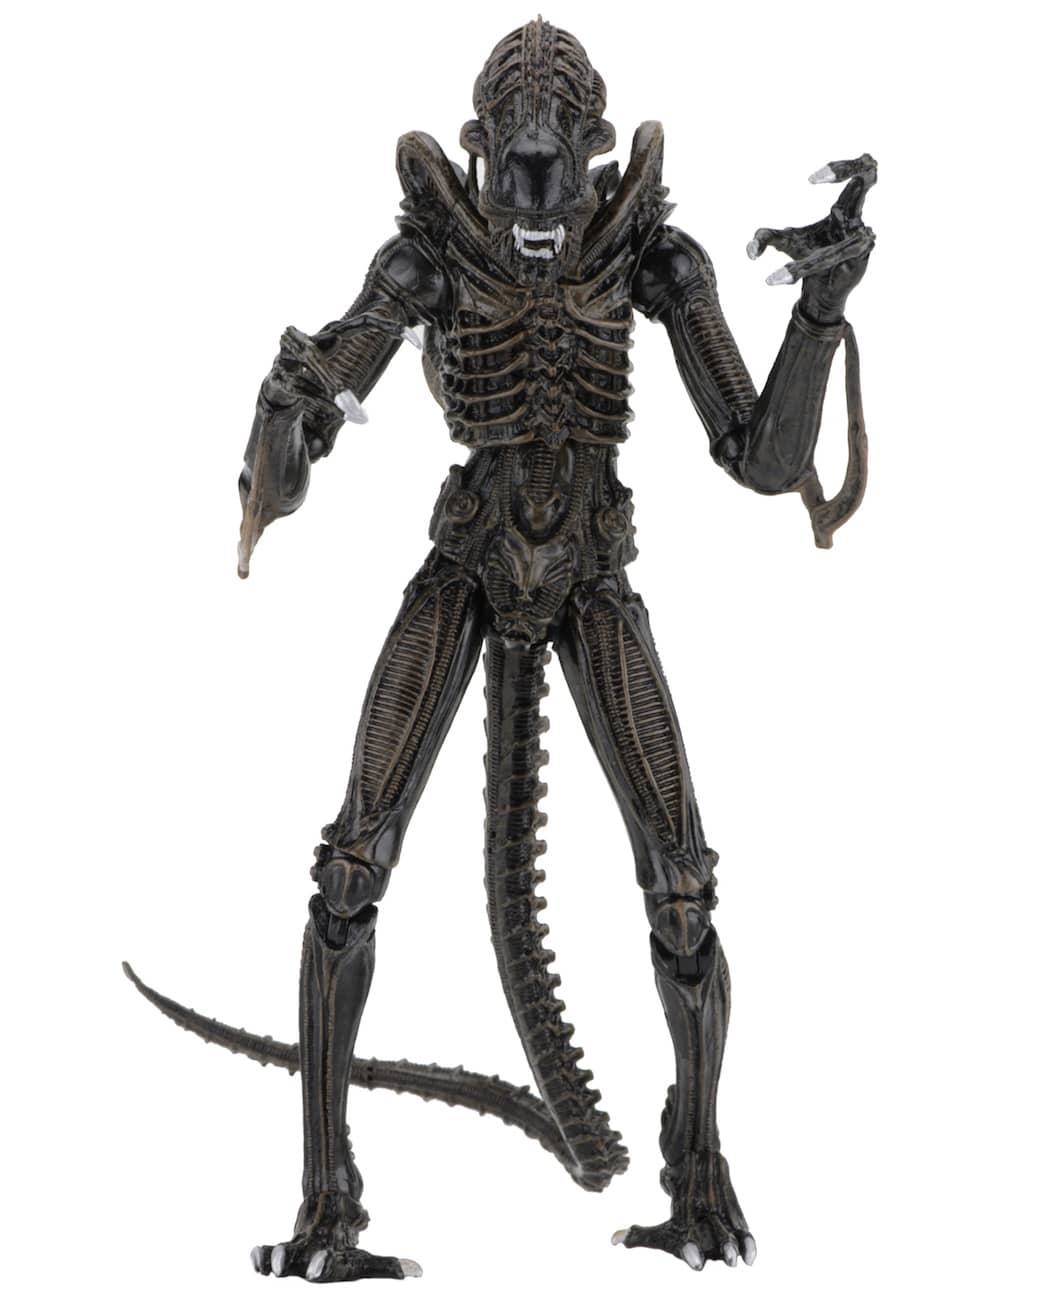 ALIEN MARRON ULTIMATE ALIENS WARRIOR 1986 FIGURA 23 CM SCALE ACTION FIGURE ALIENS